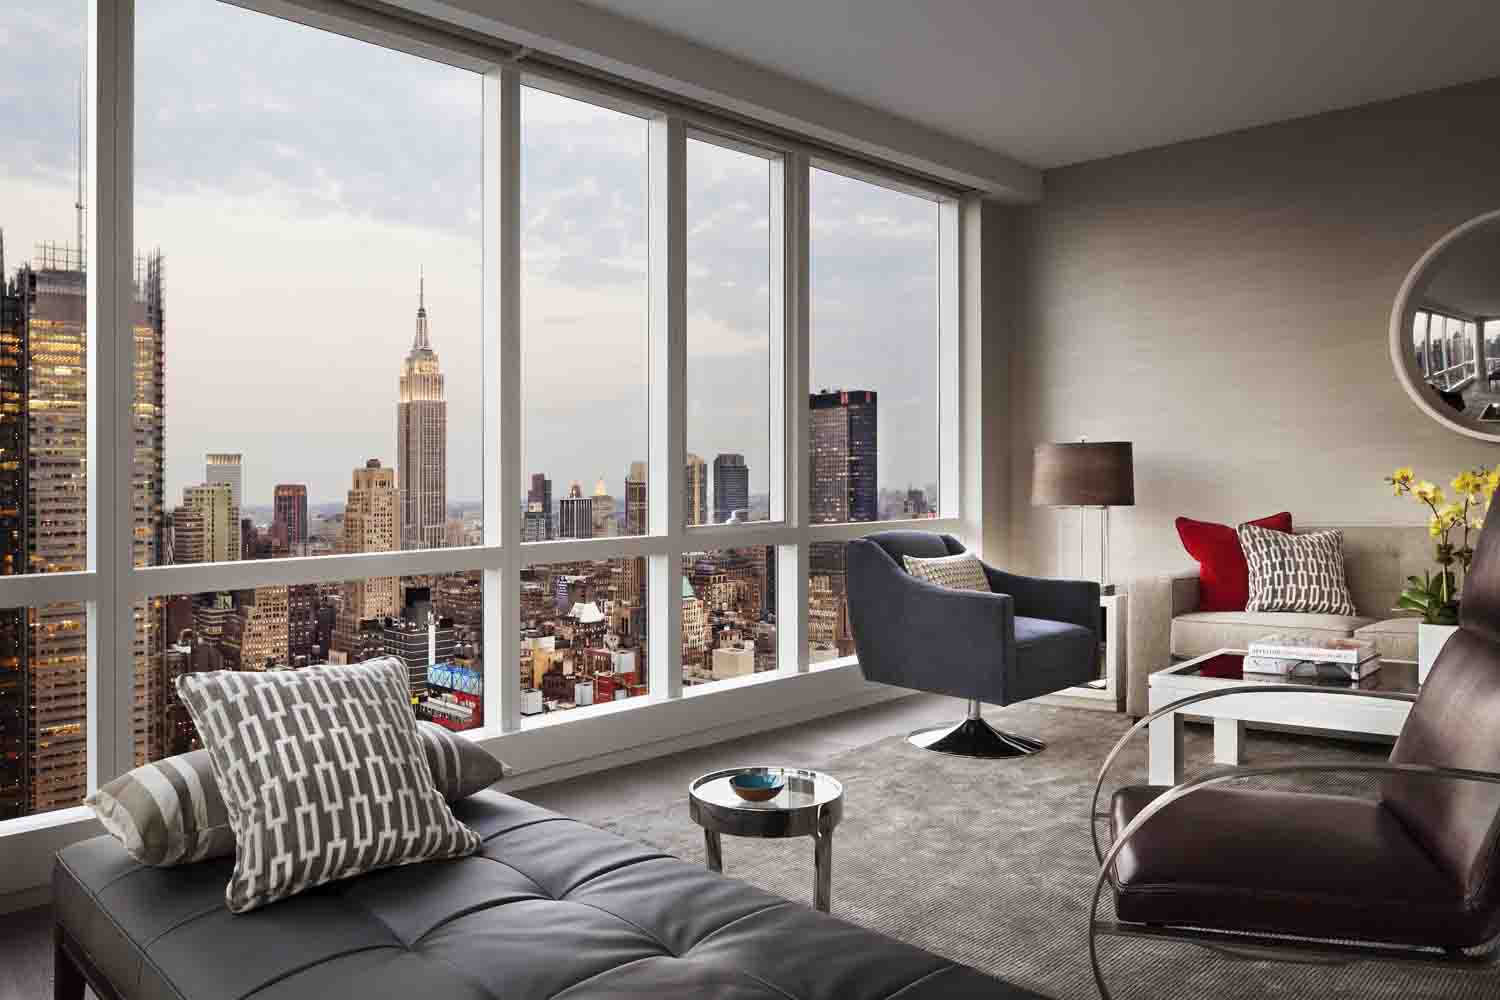 New york city luxury rental blog archives for july 2012 for Appartamenti vacanze new york city manhattan